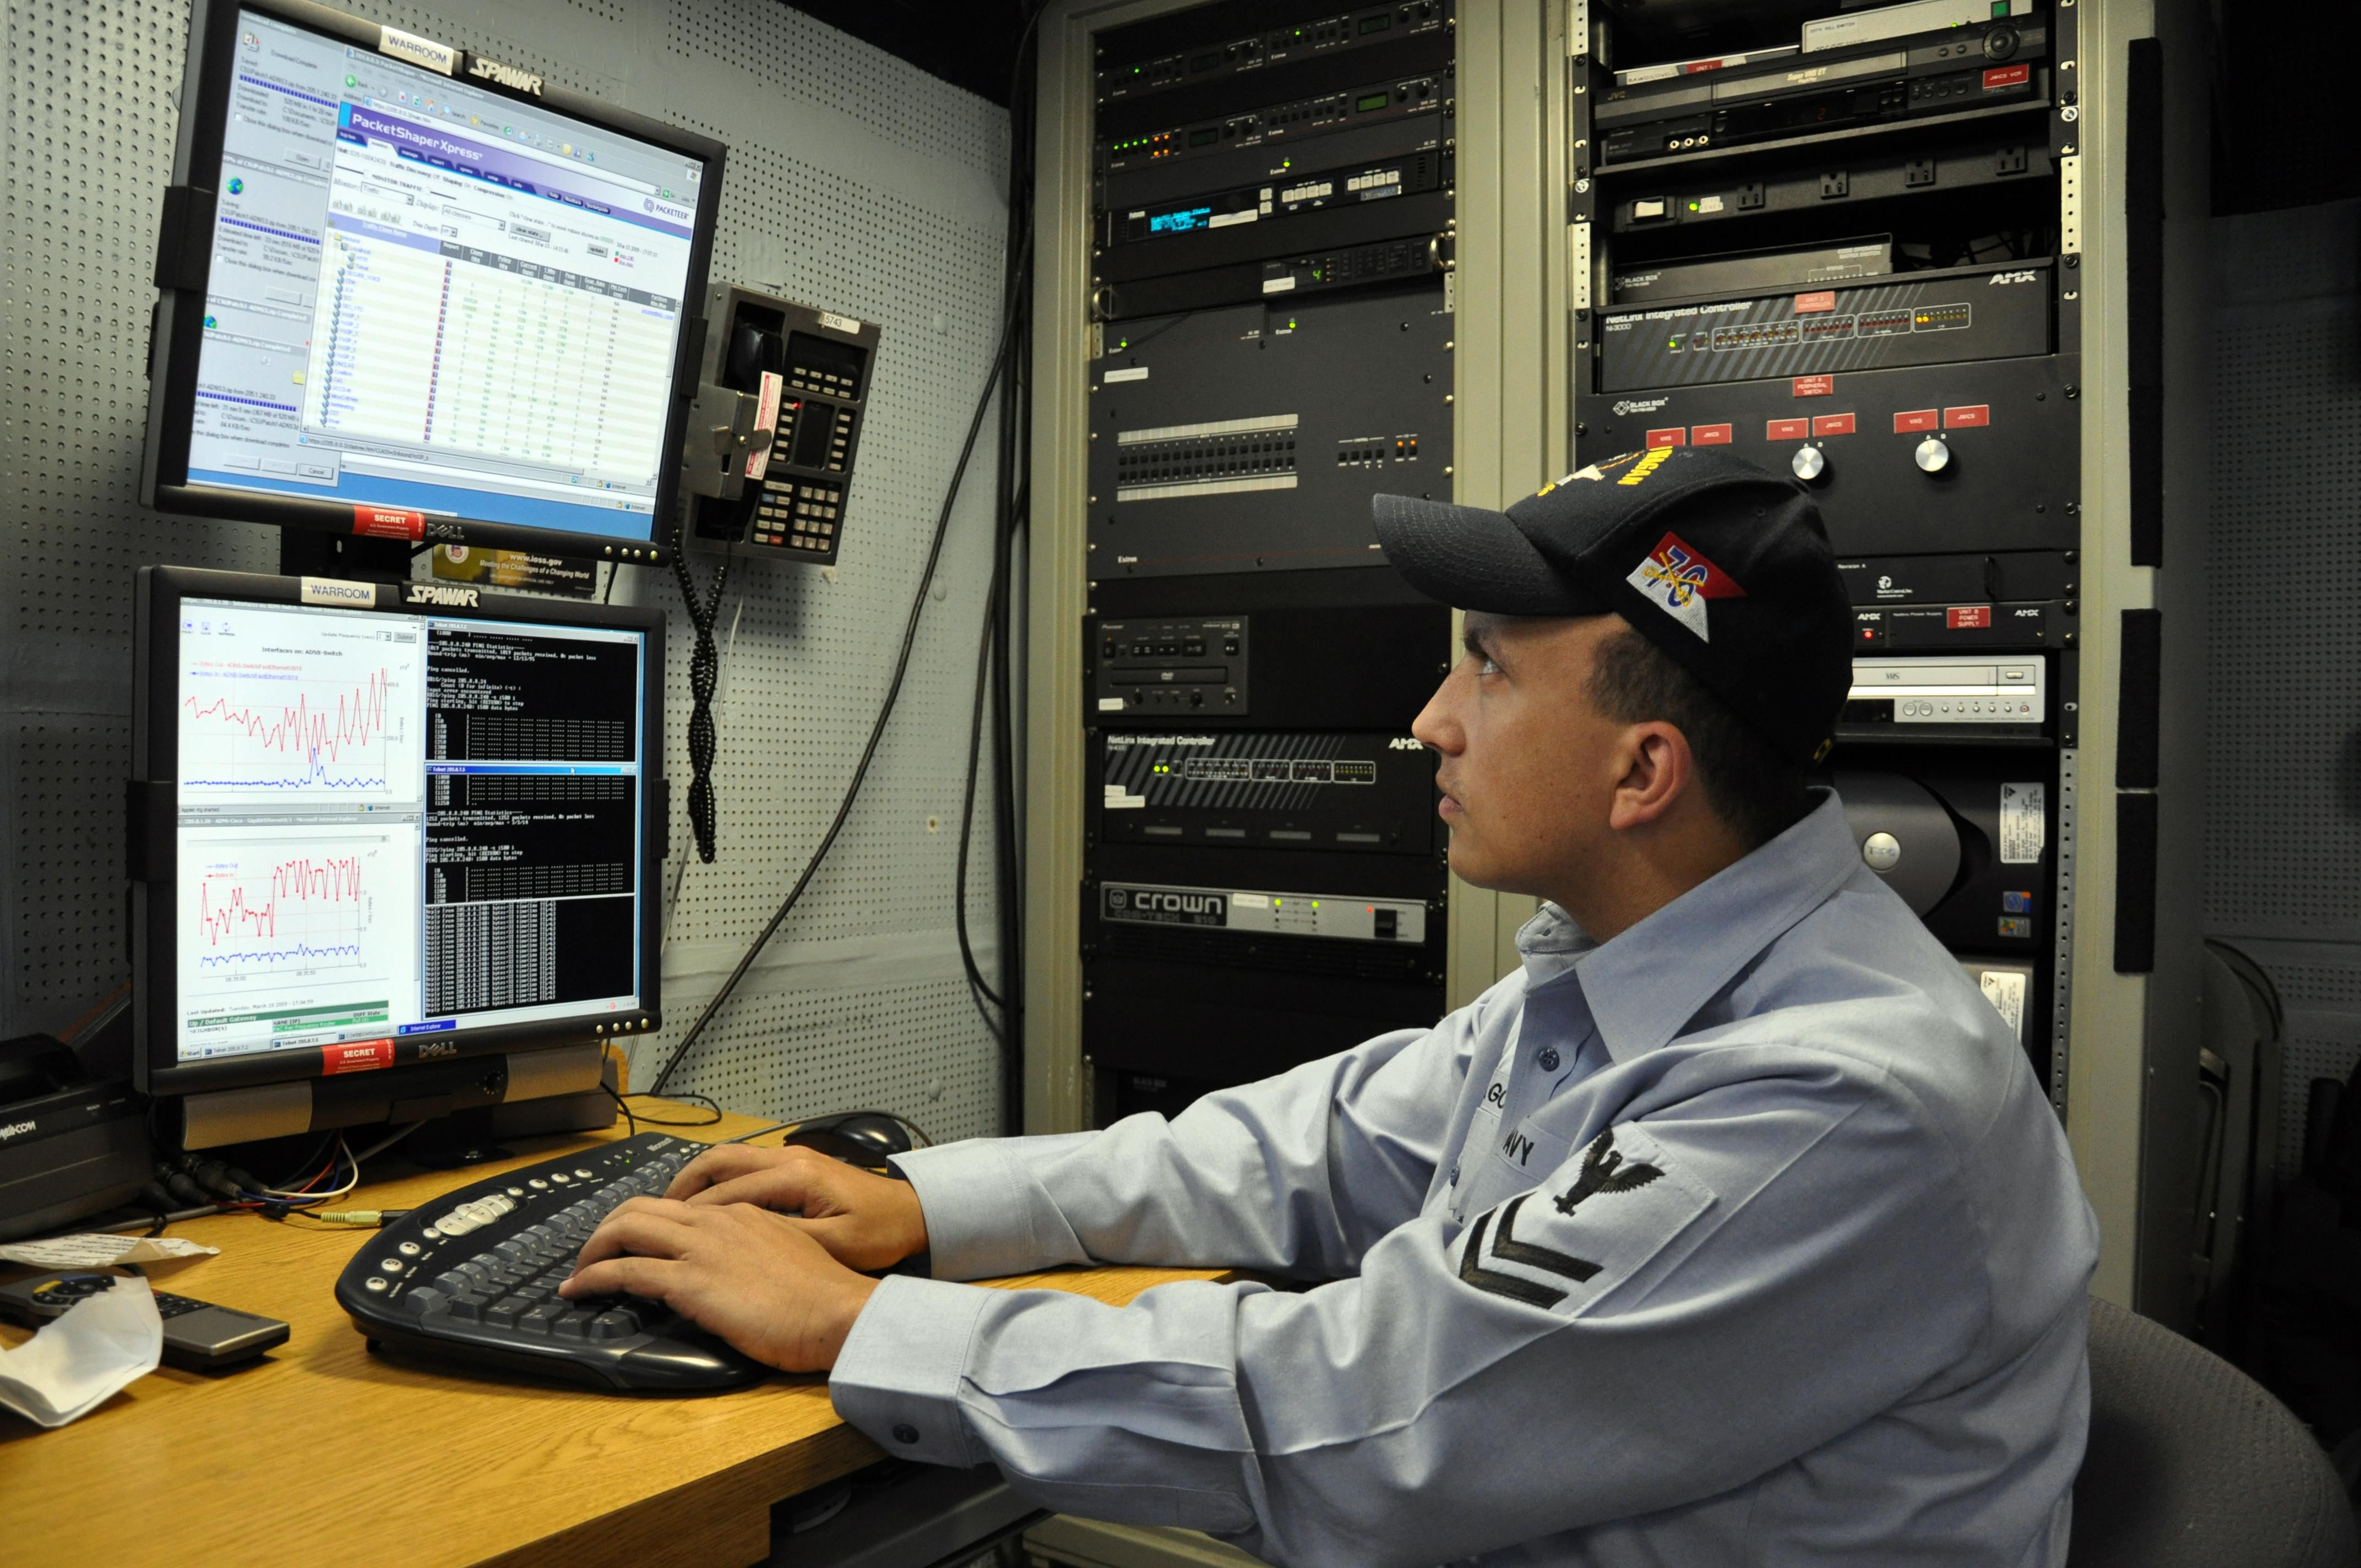 Learn About Being A Navy Information Systems Technician It